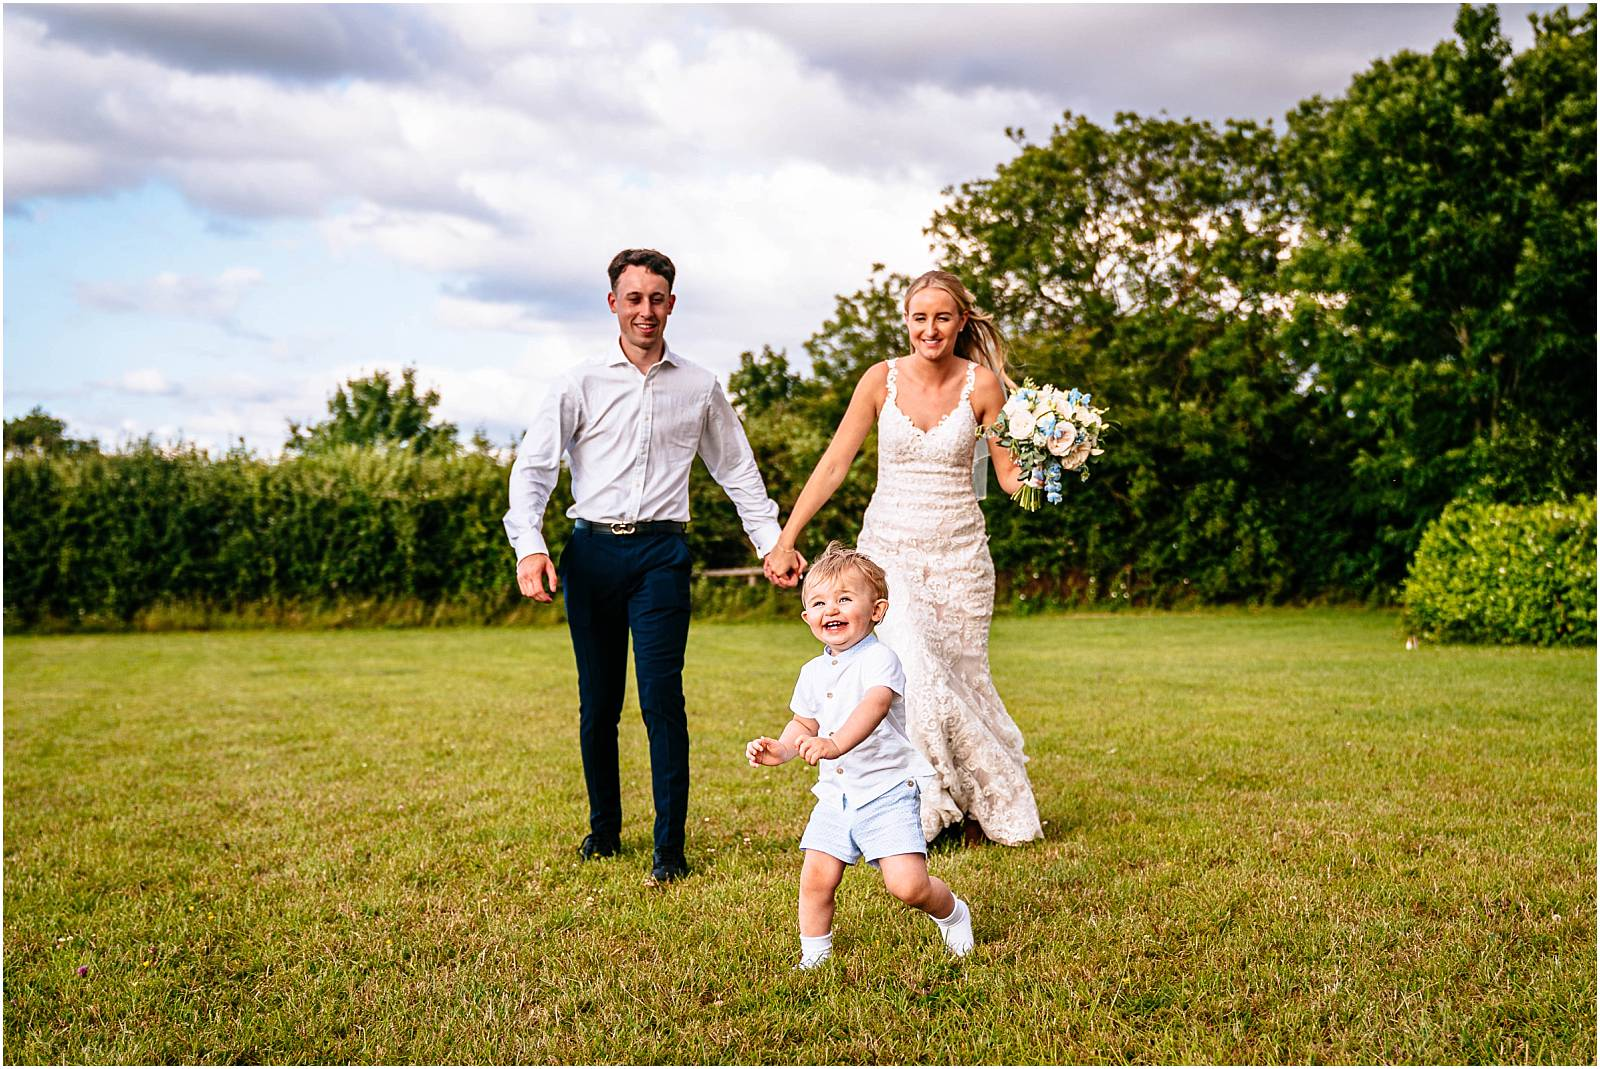 Surrey Wedding Photographer – Sam & Tom's Zinnia Gardens Wedding